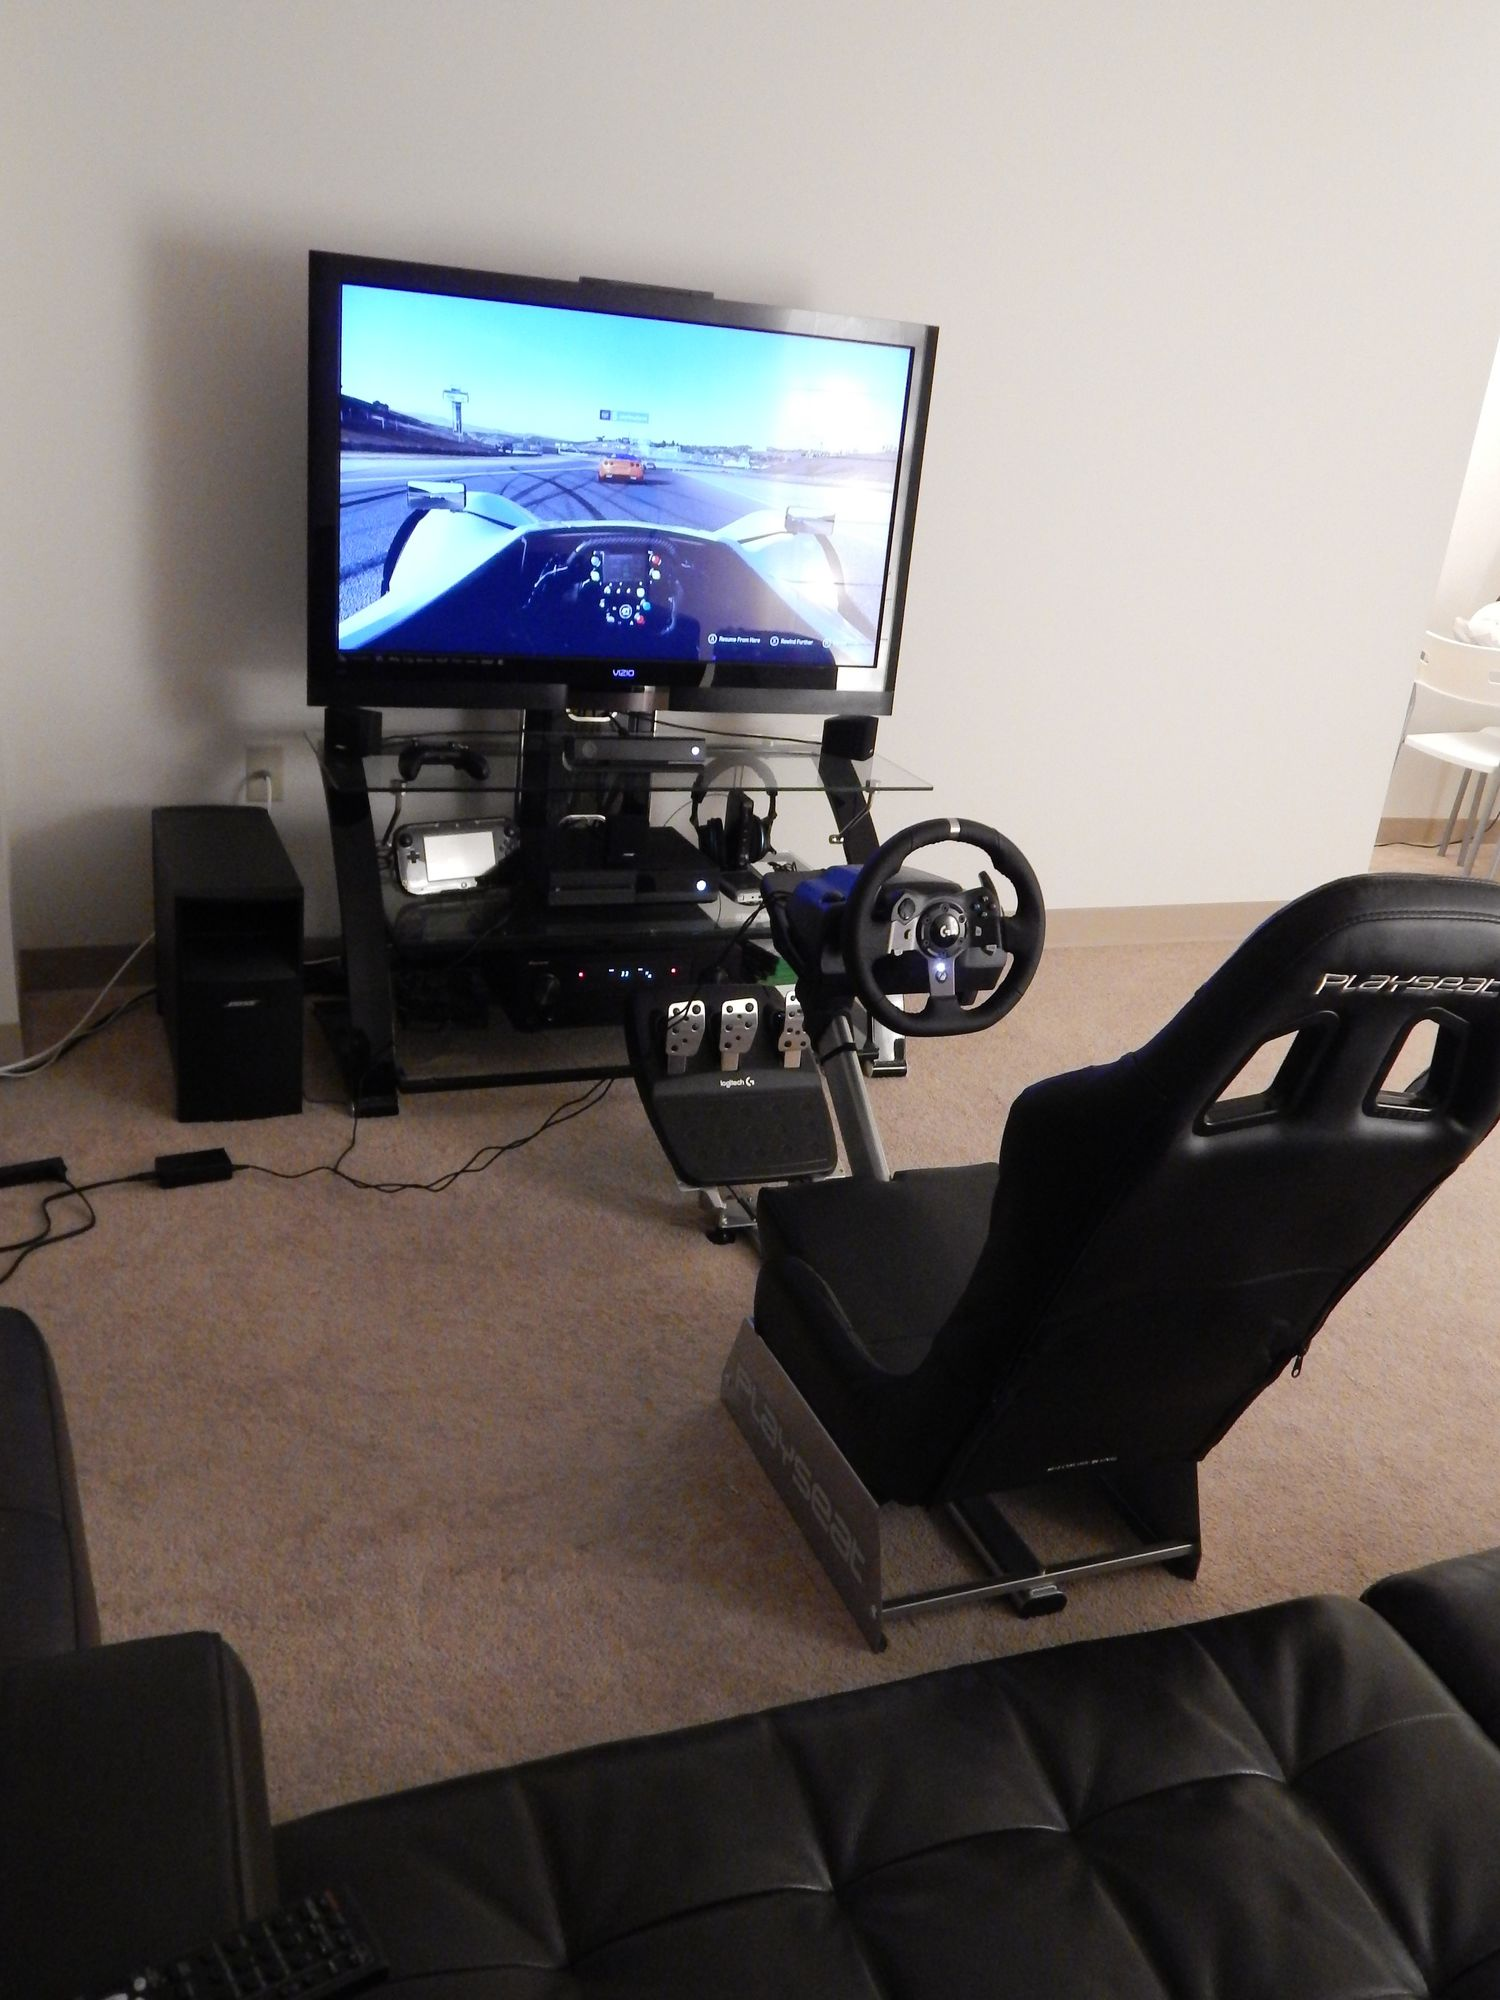 Excellent racing sim seat for the price.